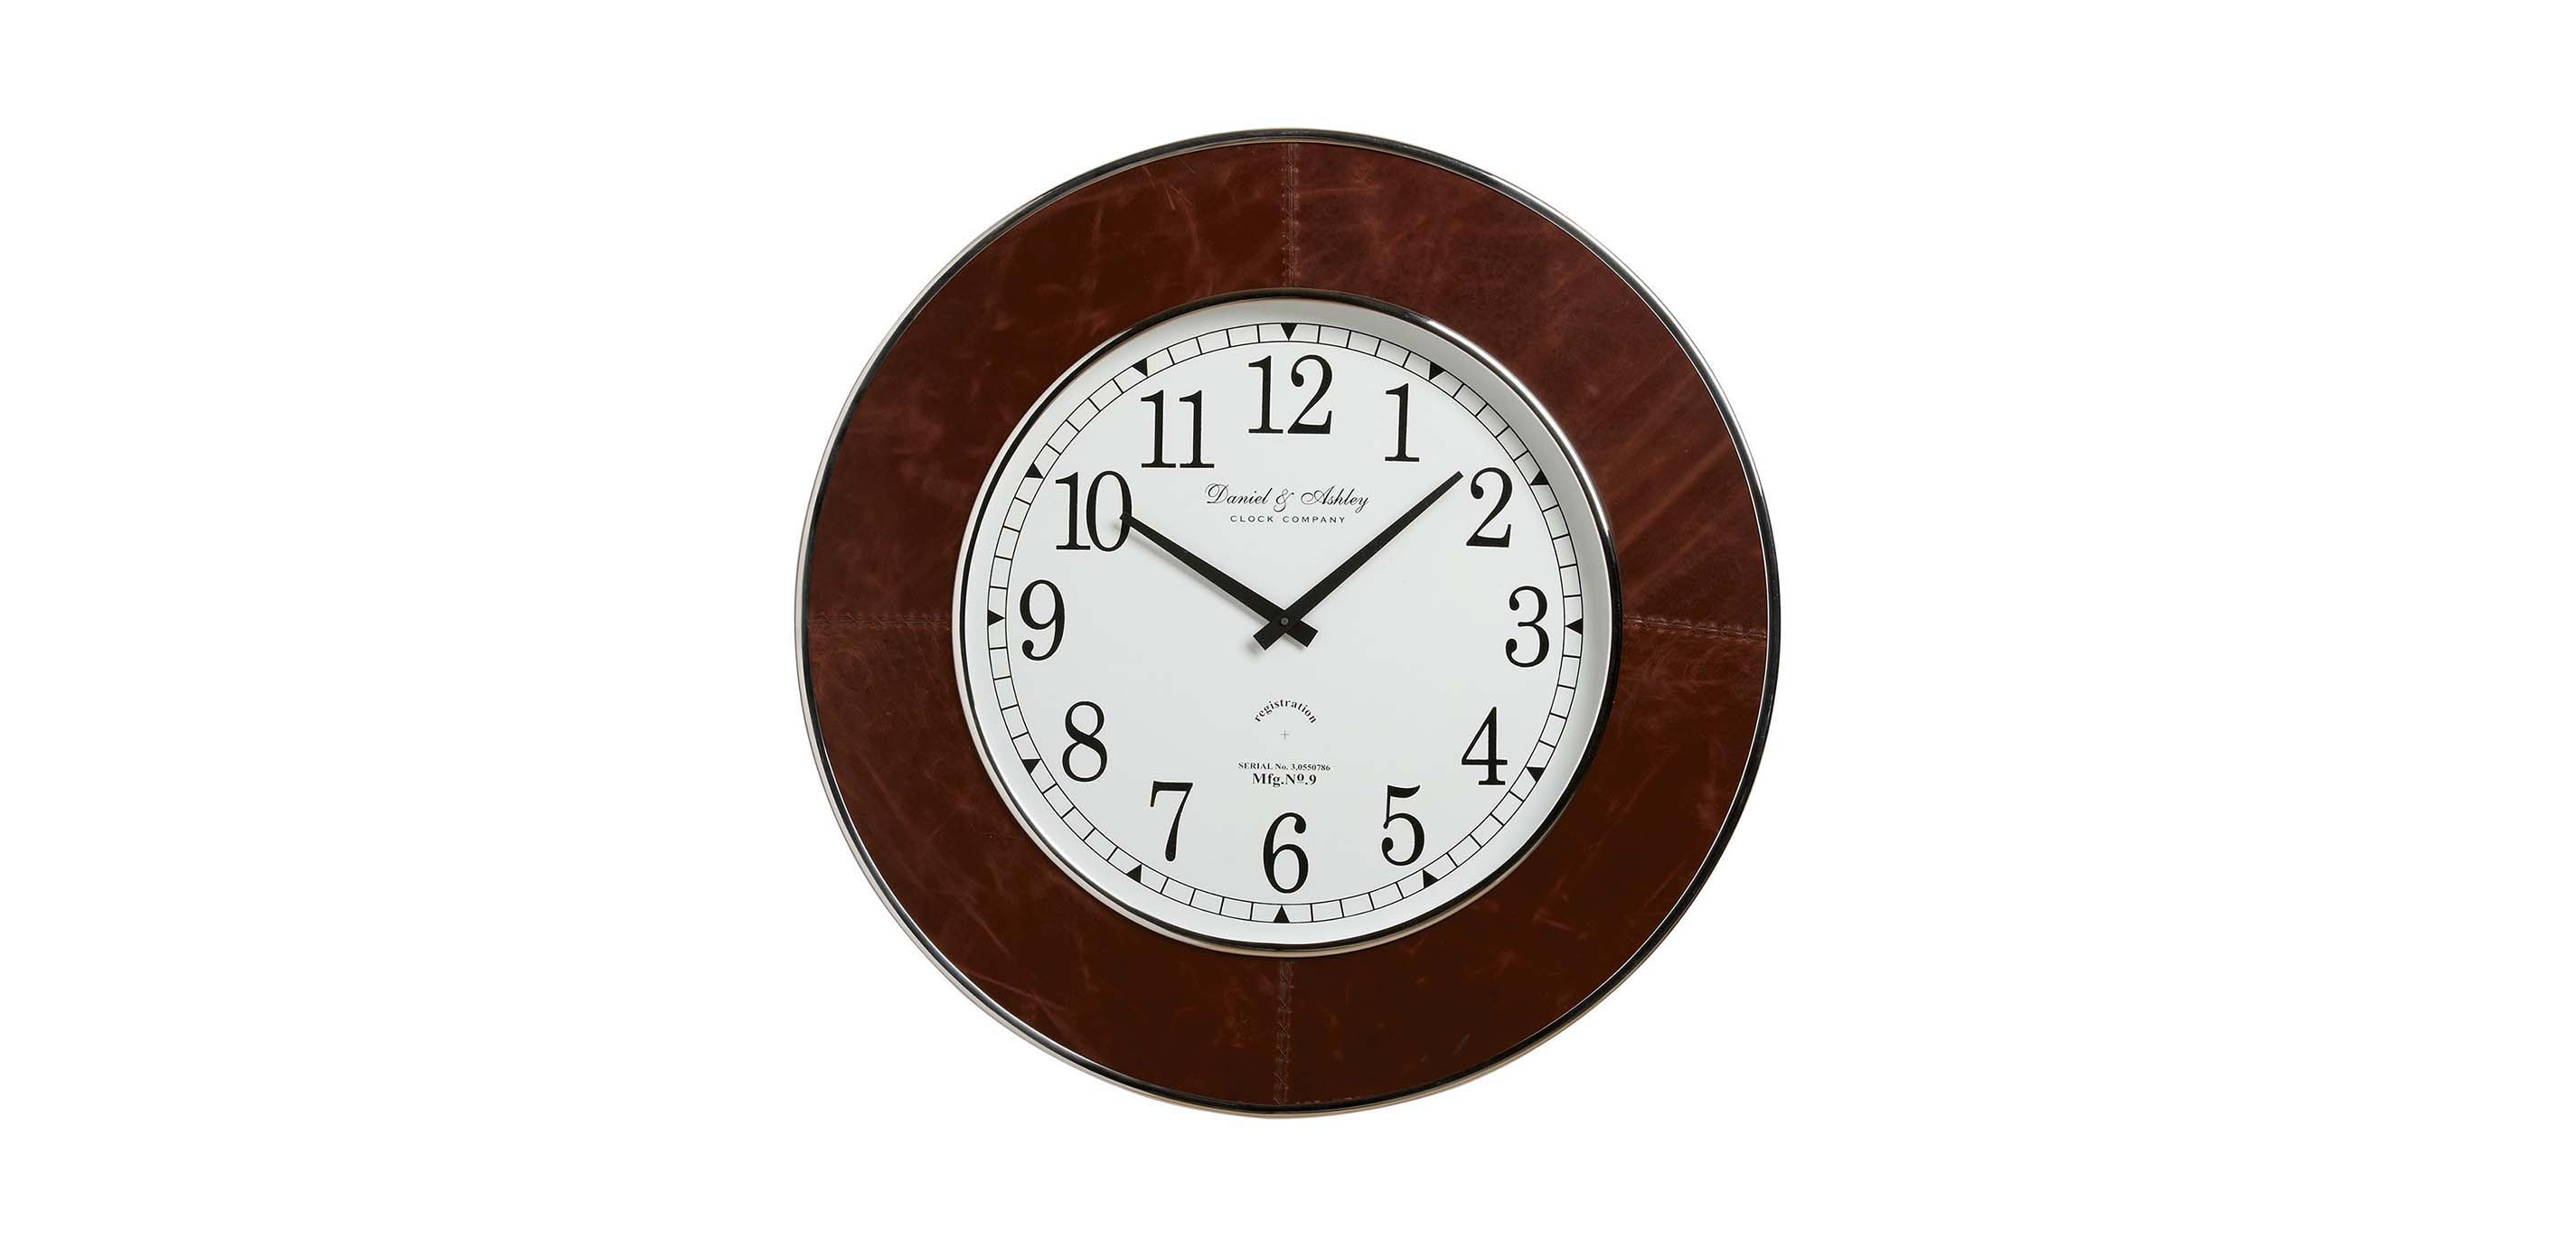 Leather wall clock clocks images leather wall clock largegray amipublicfo Gallery